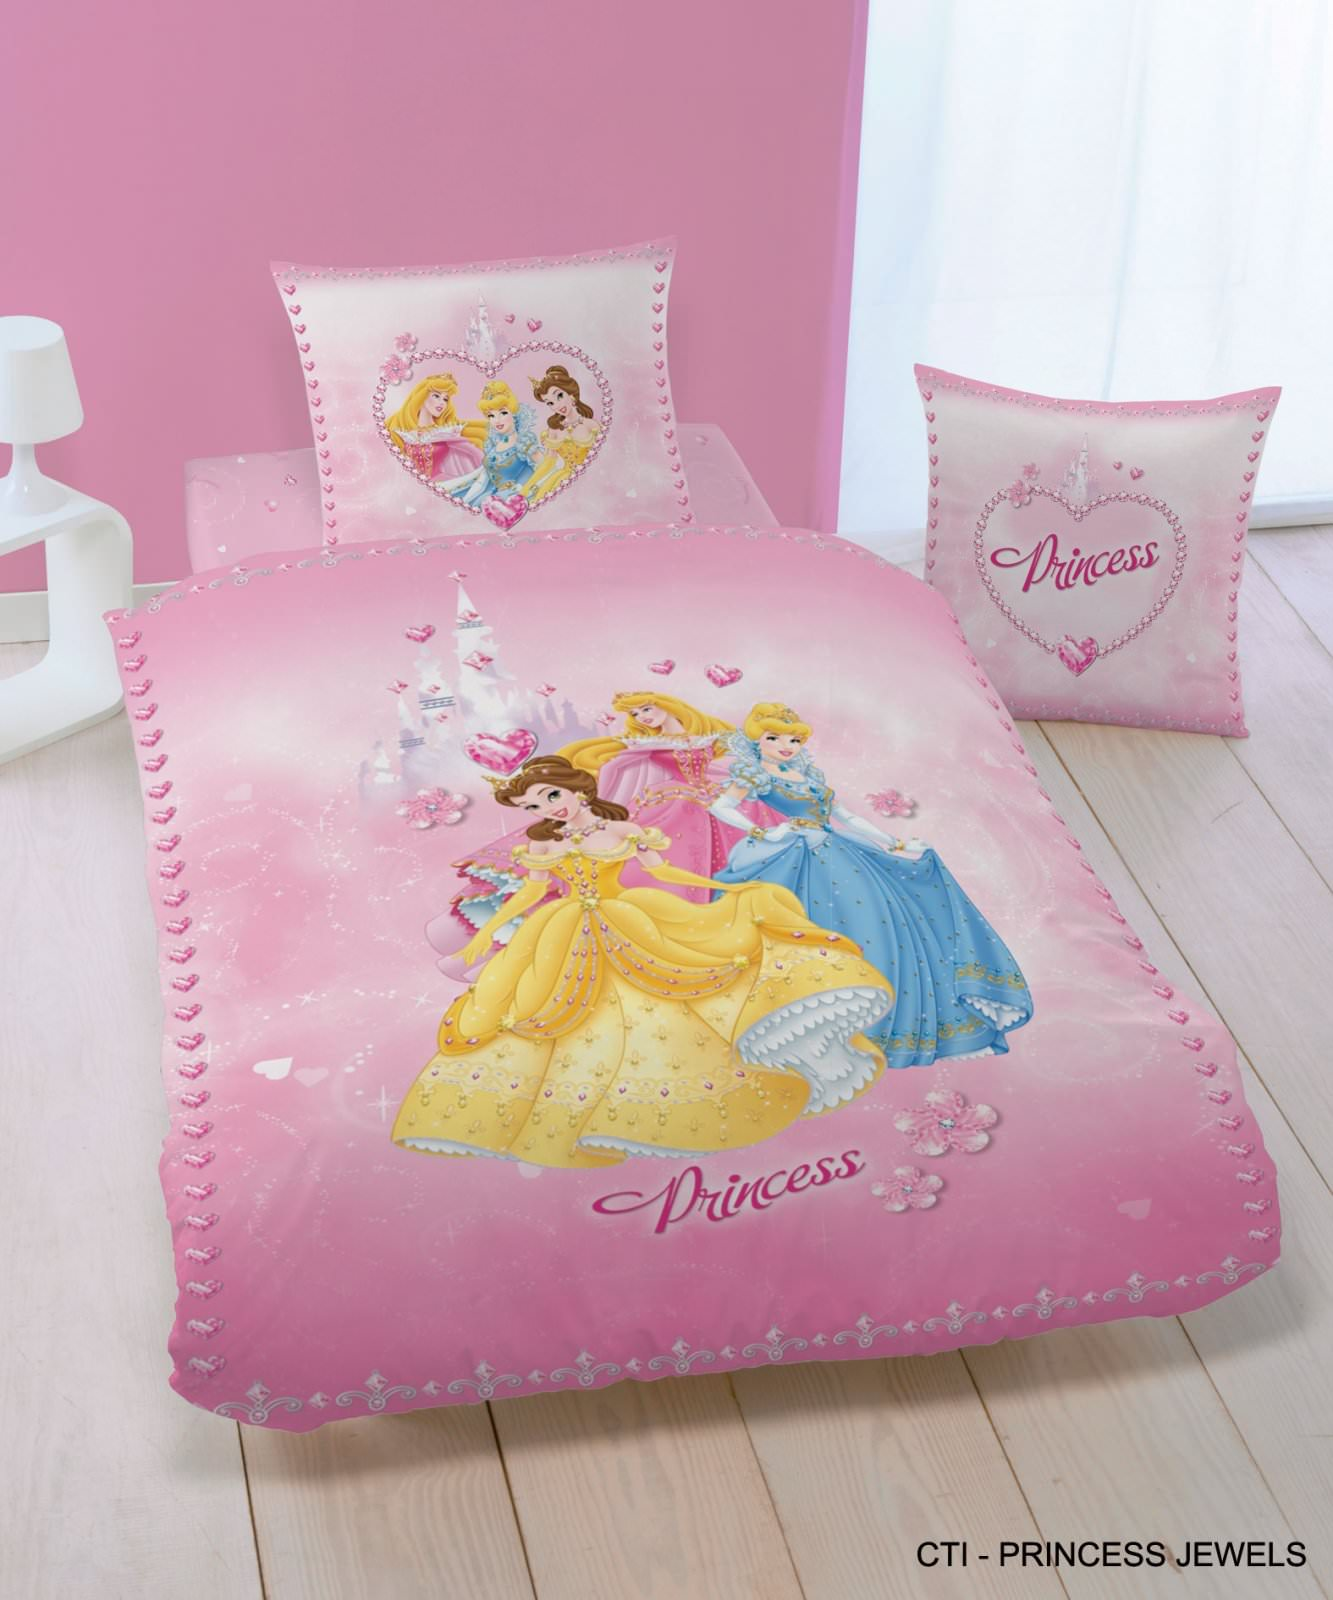 housse de couett disney princesse 140 x 200 cm parure. Black Bedroom Furniture Sets. Home Design Ideas